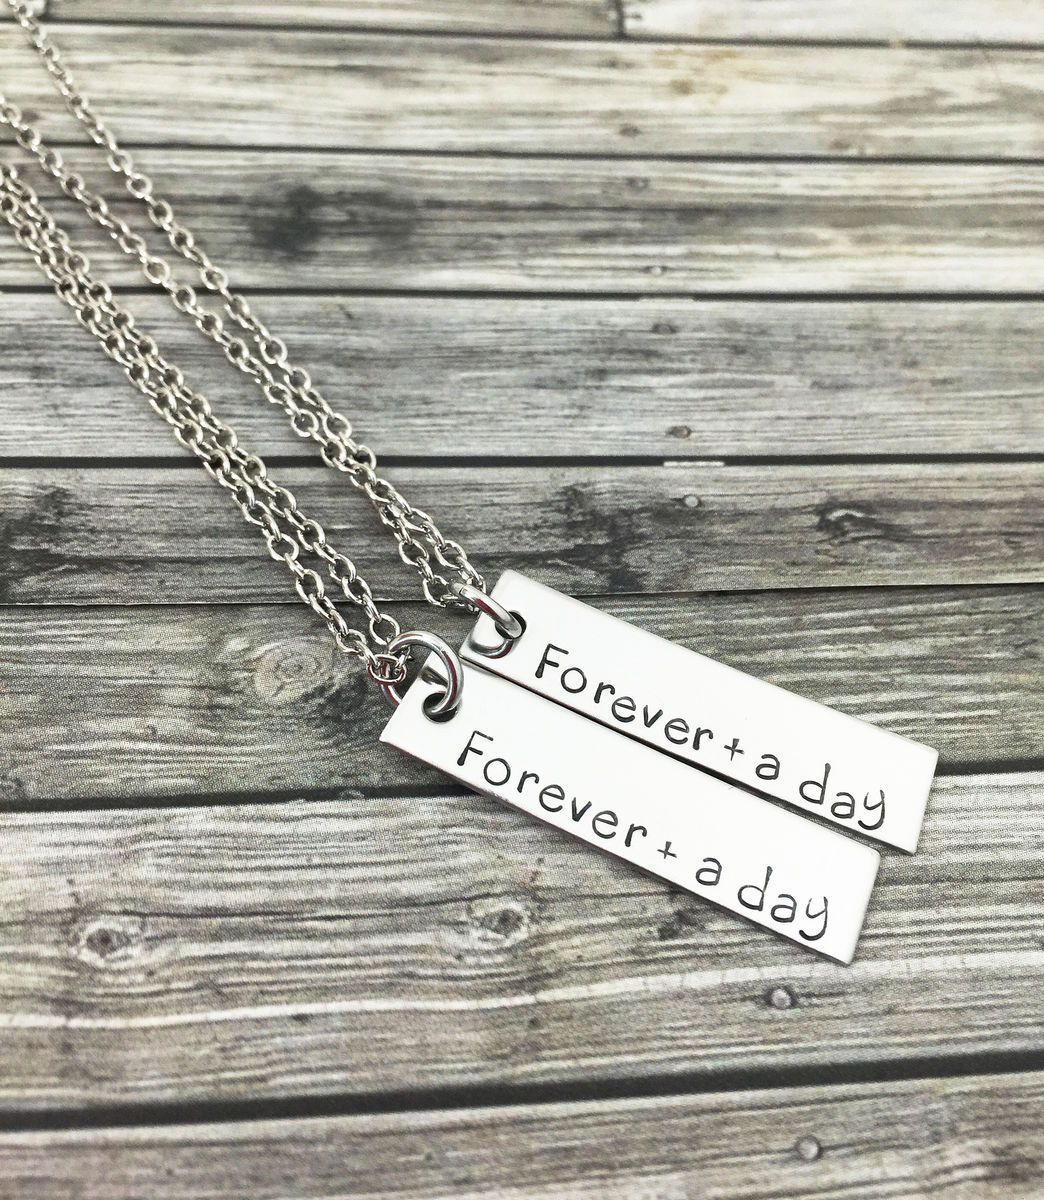 Forever and a day couples necklaces, Couples Jewelry Boyfriend Gift - product image